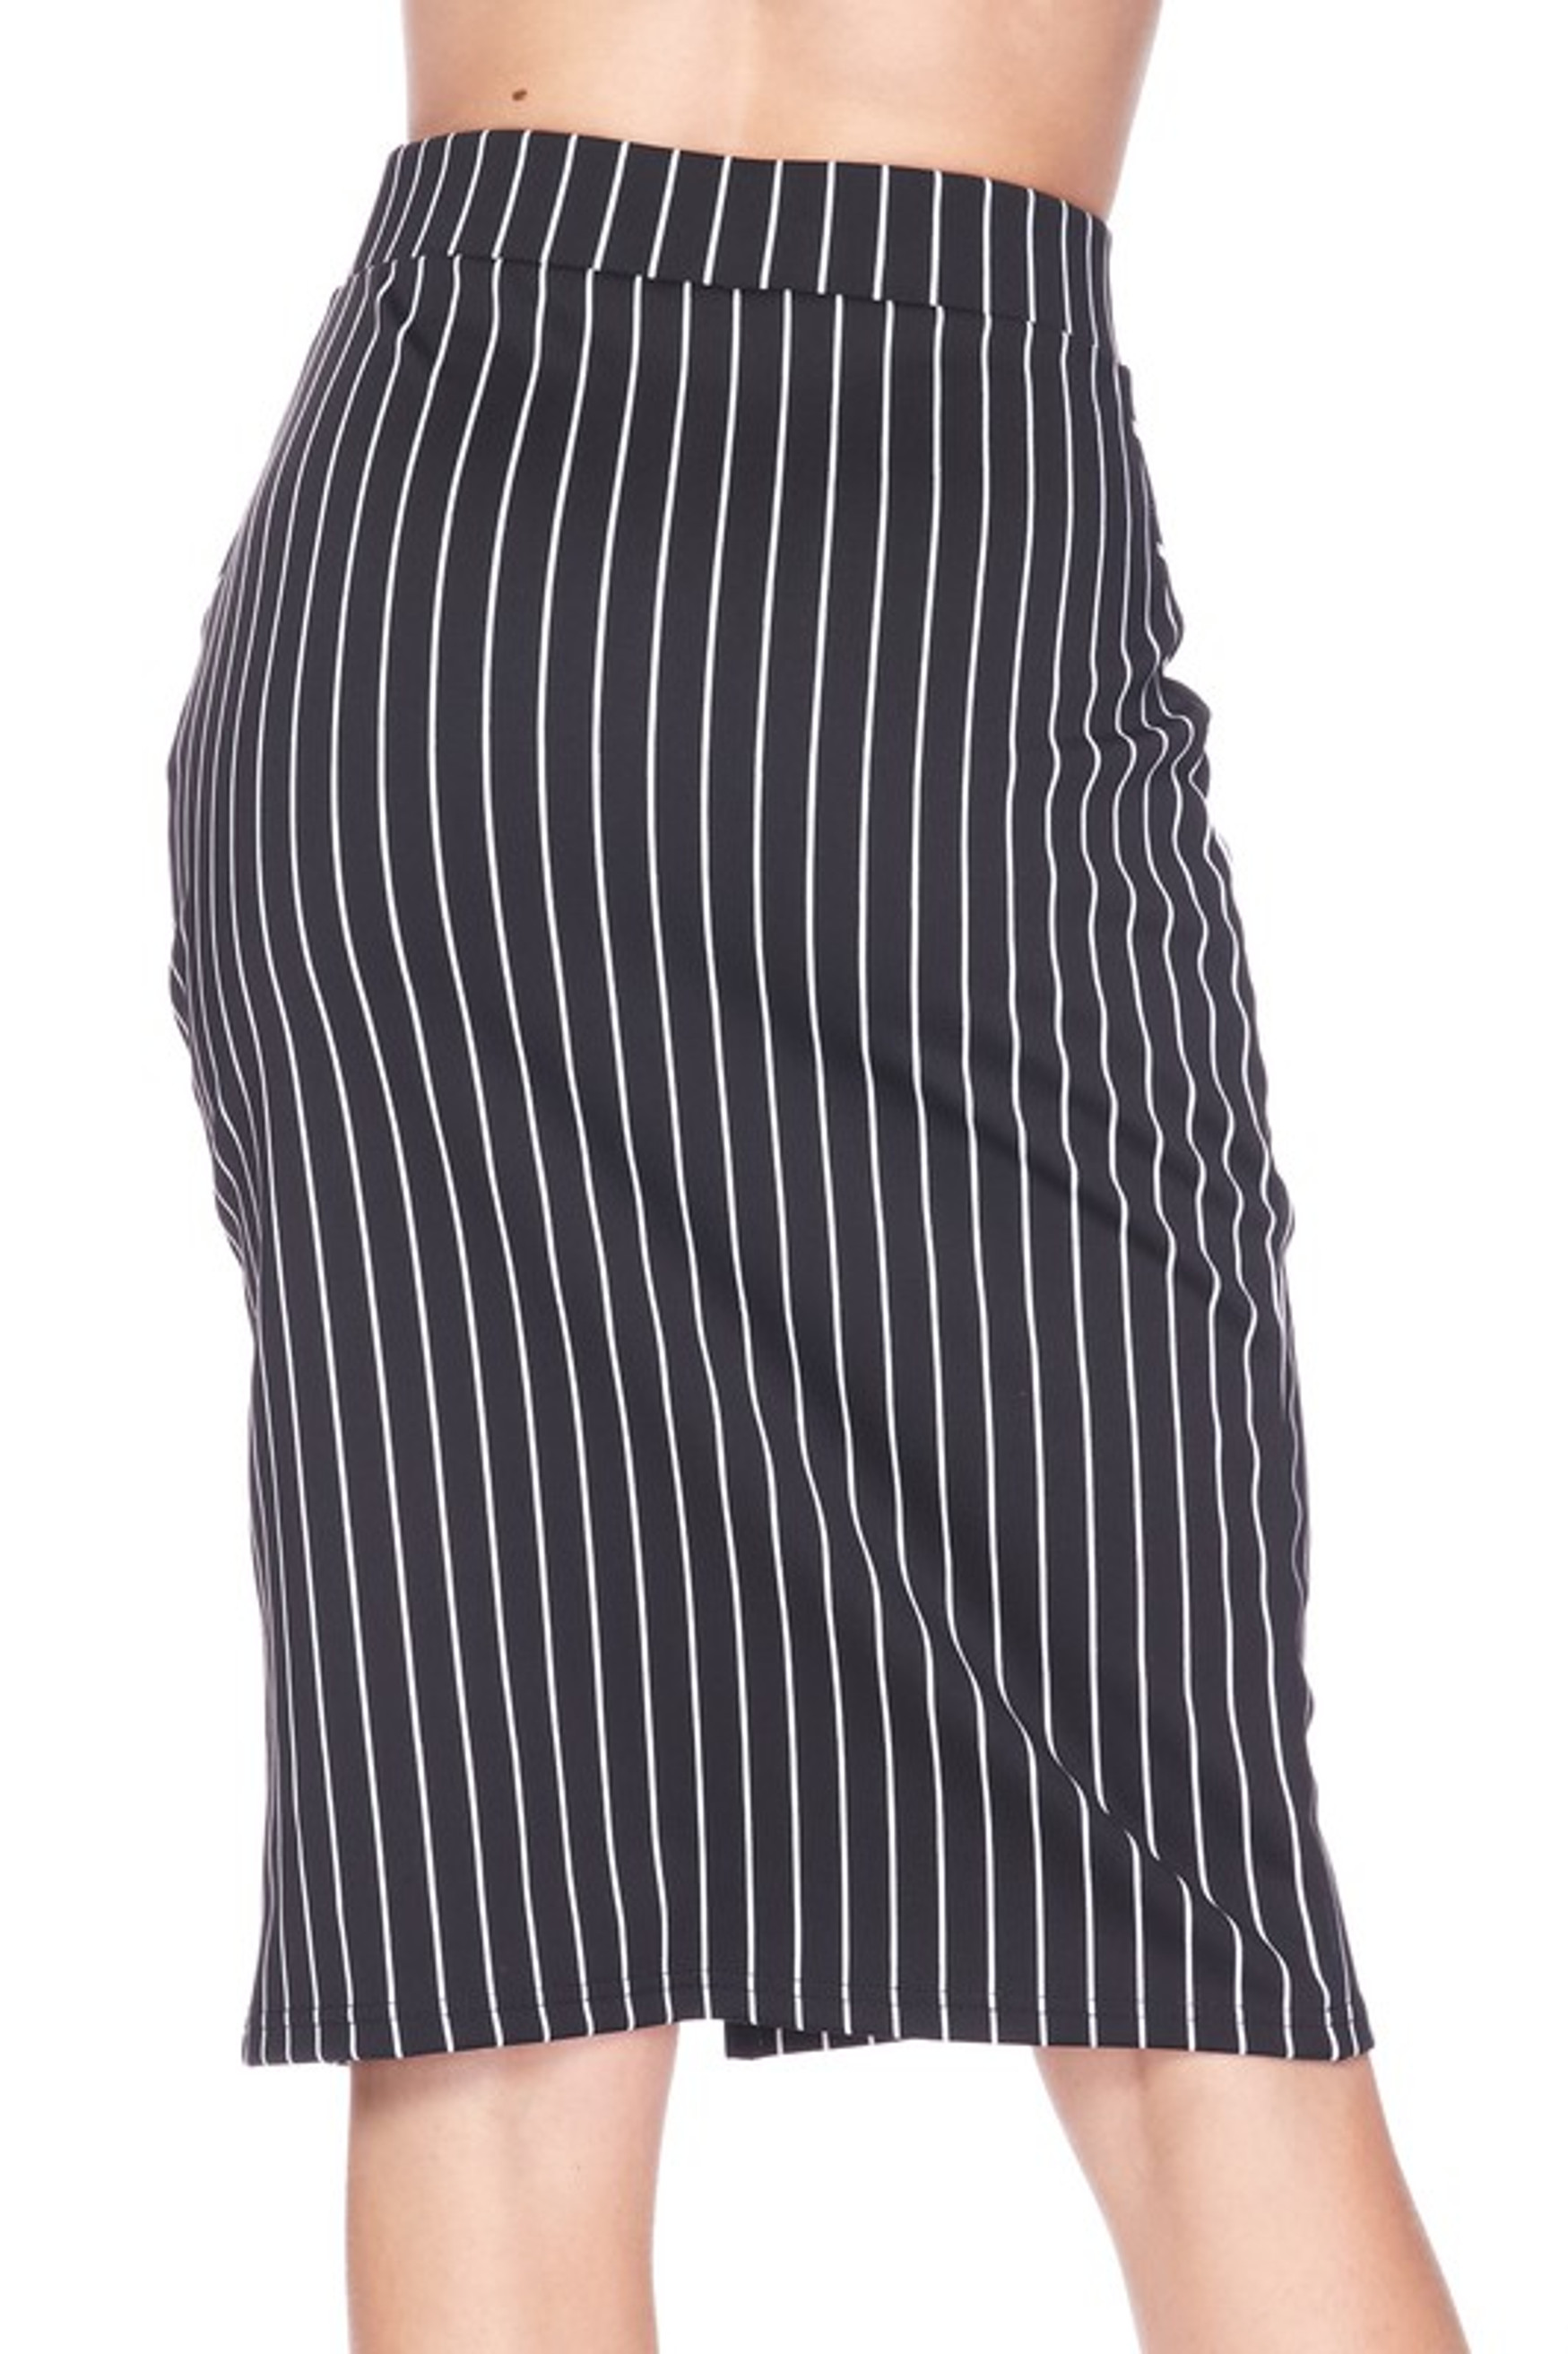 Silky Soft Scuba Black and White Pinstripe Plus Size Pencil Skirt with Front Slit